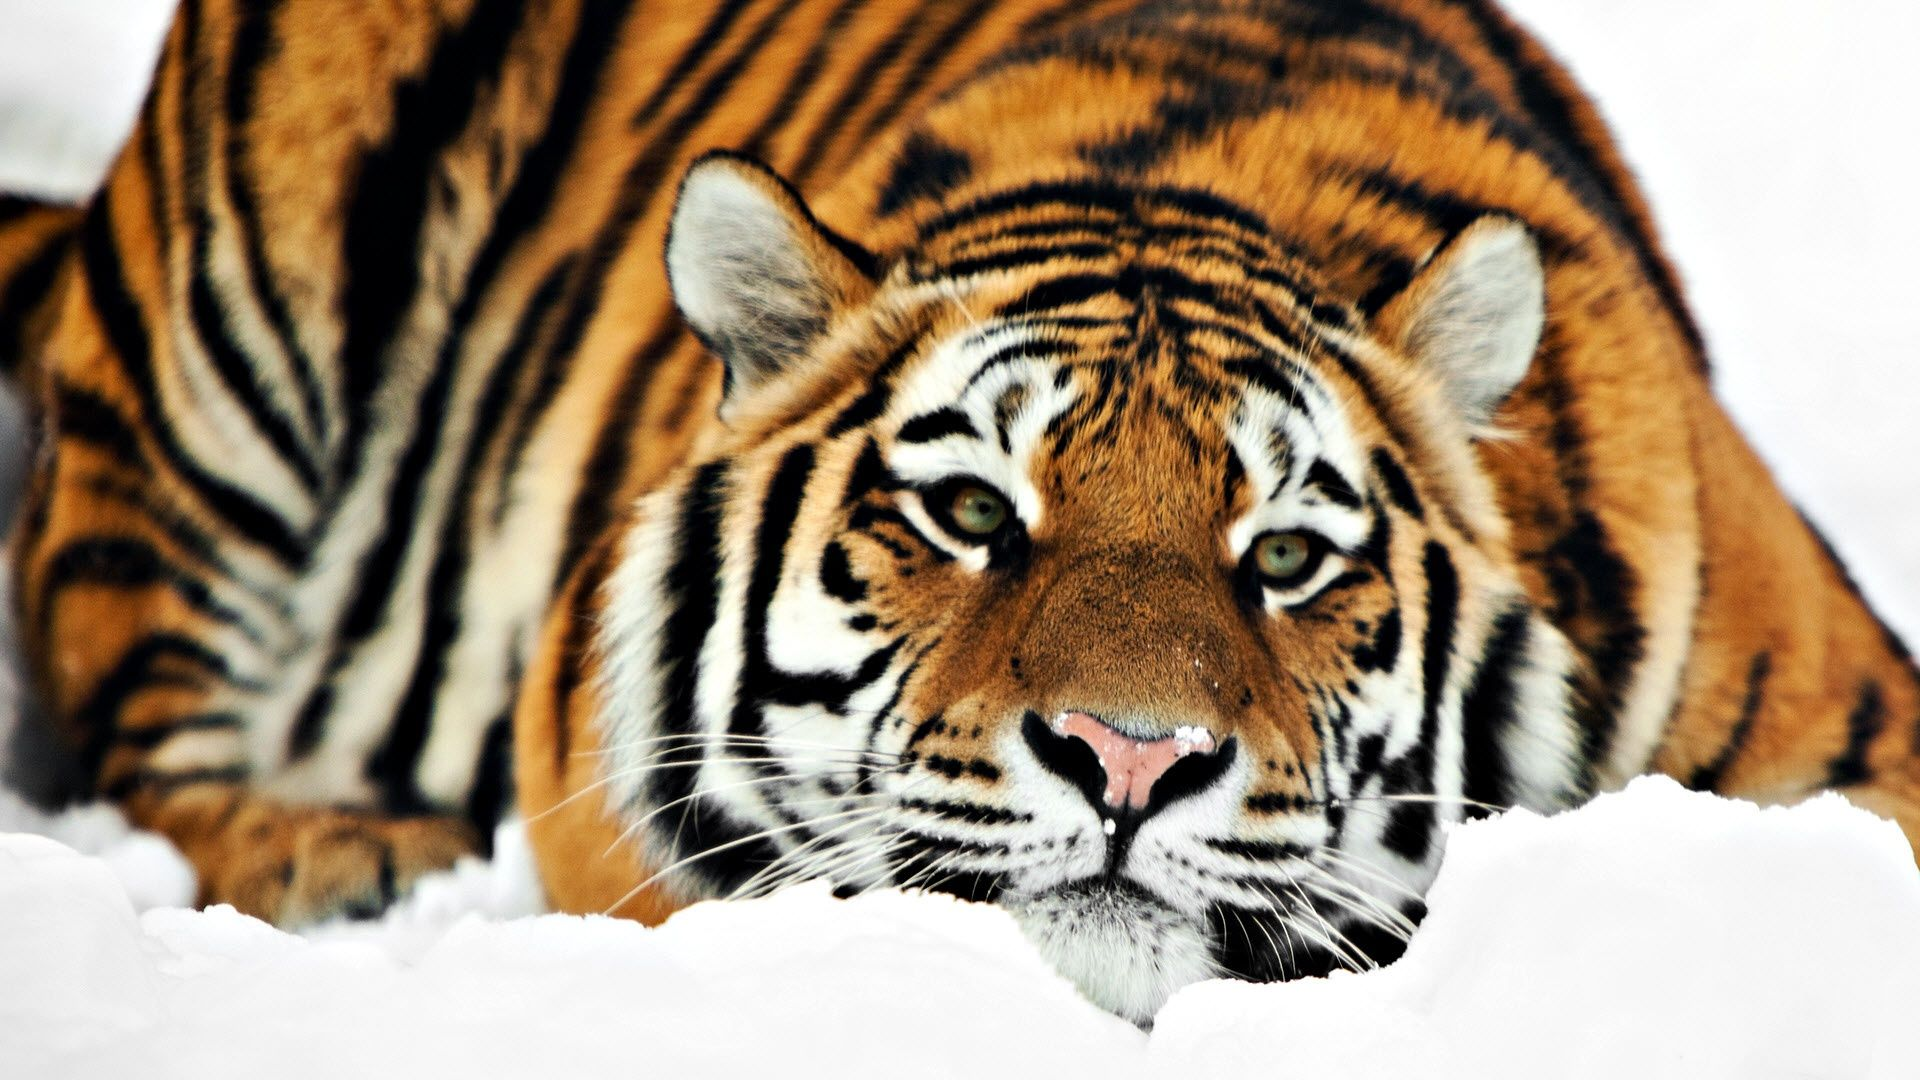 Wild Cats Wild Cats Tiger Animal Hd P Kingdom Wallpaper With 1920x1080 Tiger Pictures Pet Tiger Tiger Photography